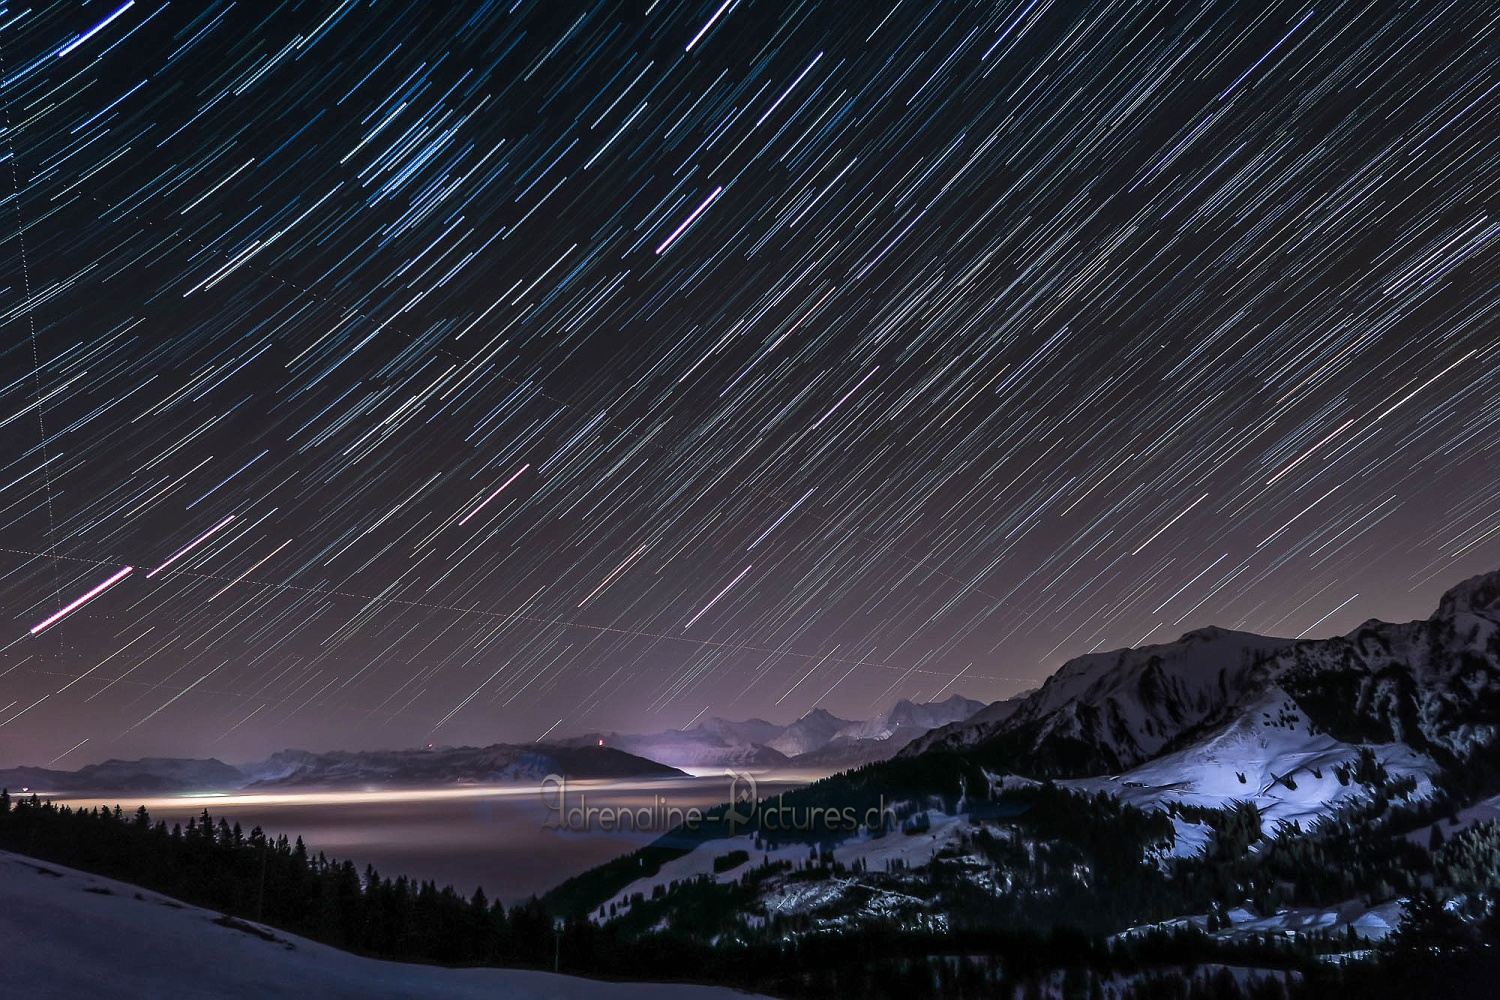 Startrails, Gurnigel